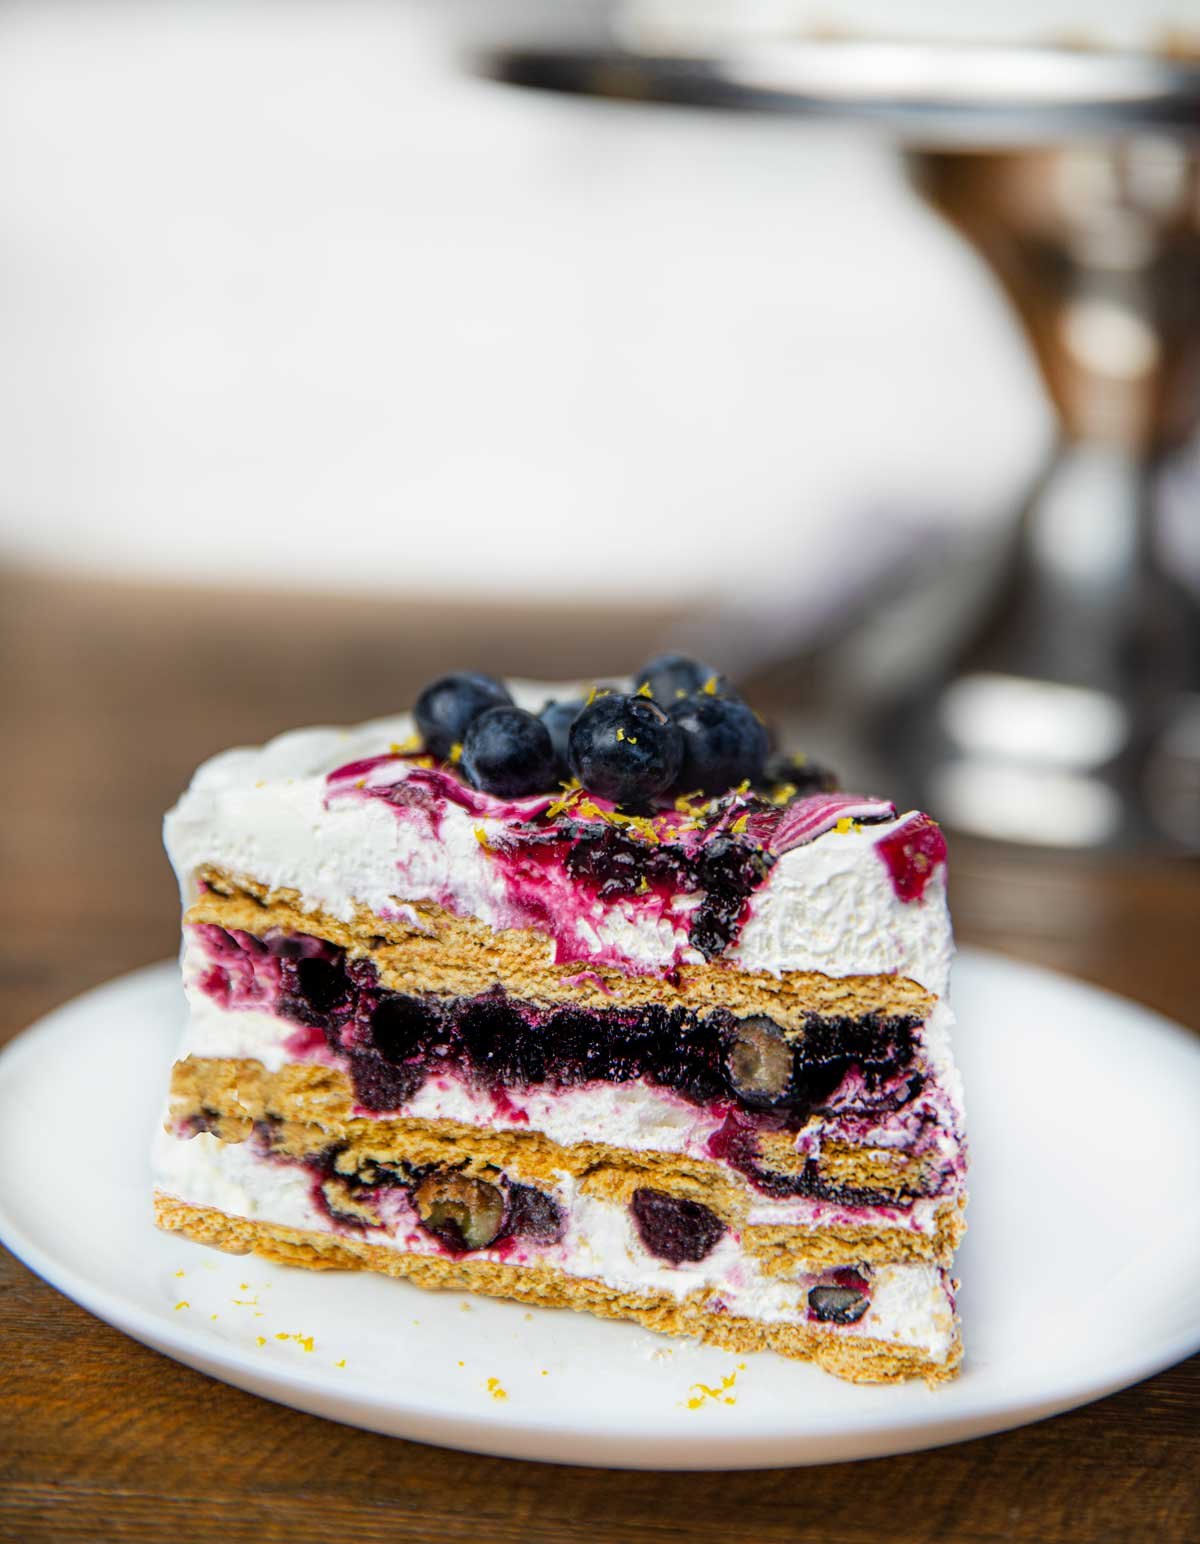 Blueberry Icebox Cake